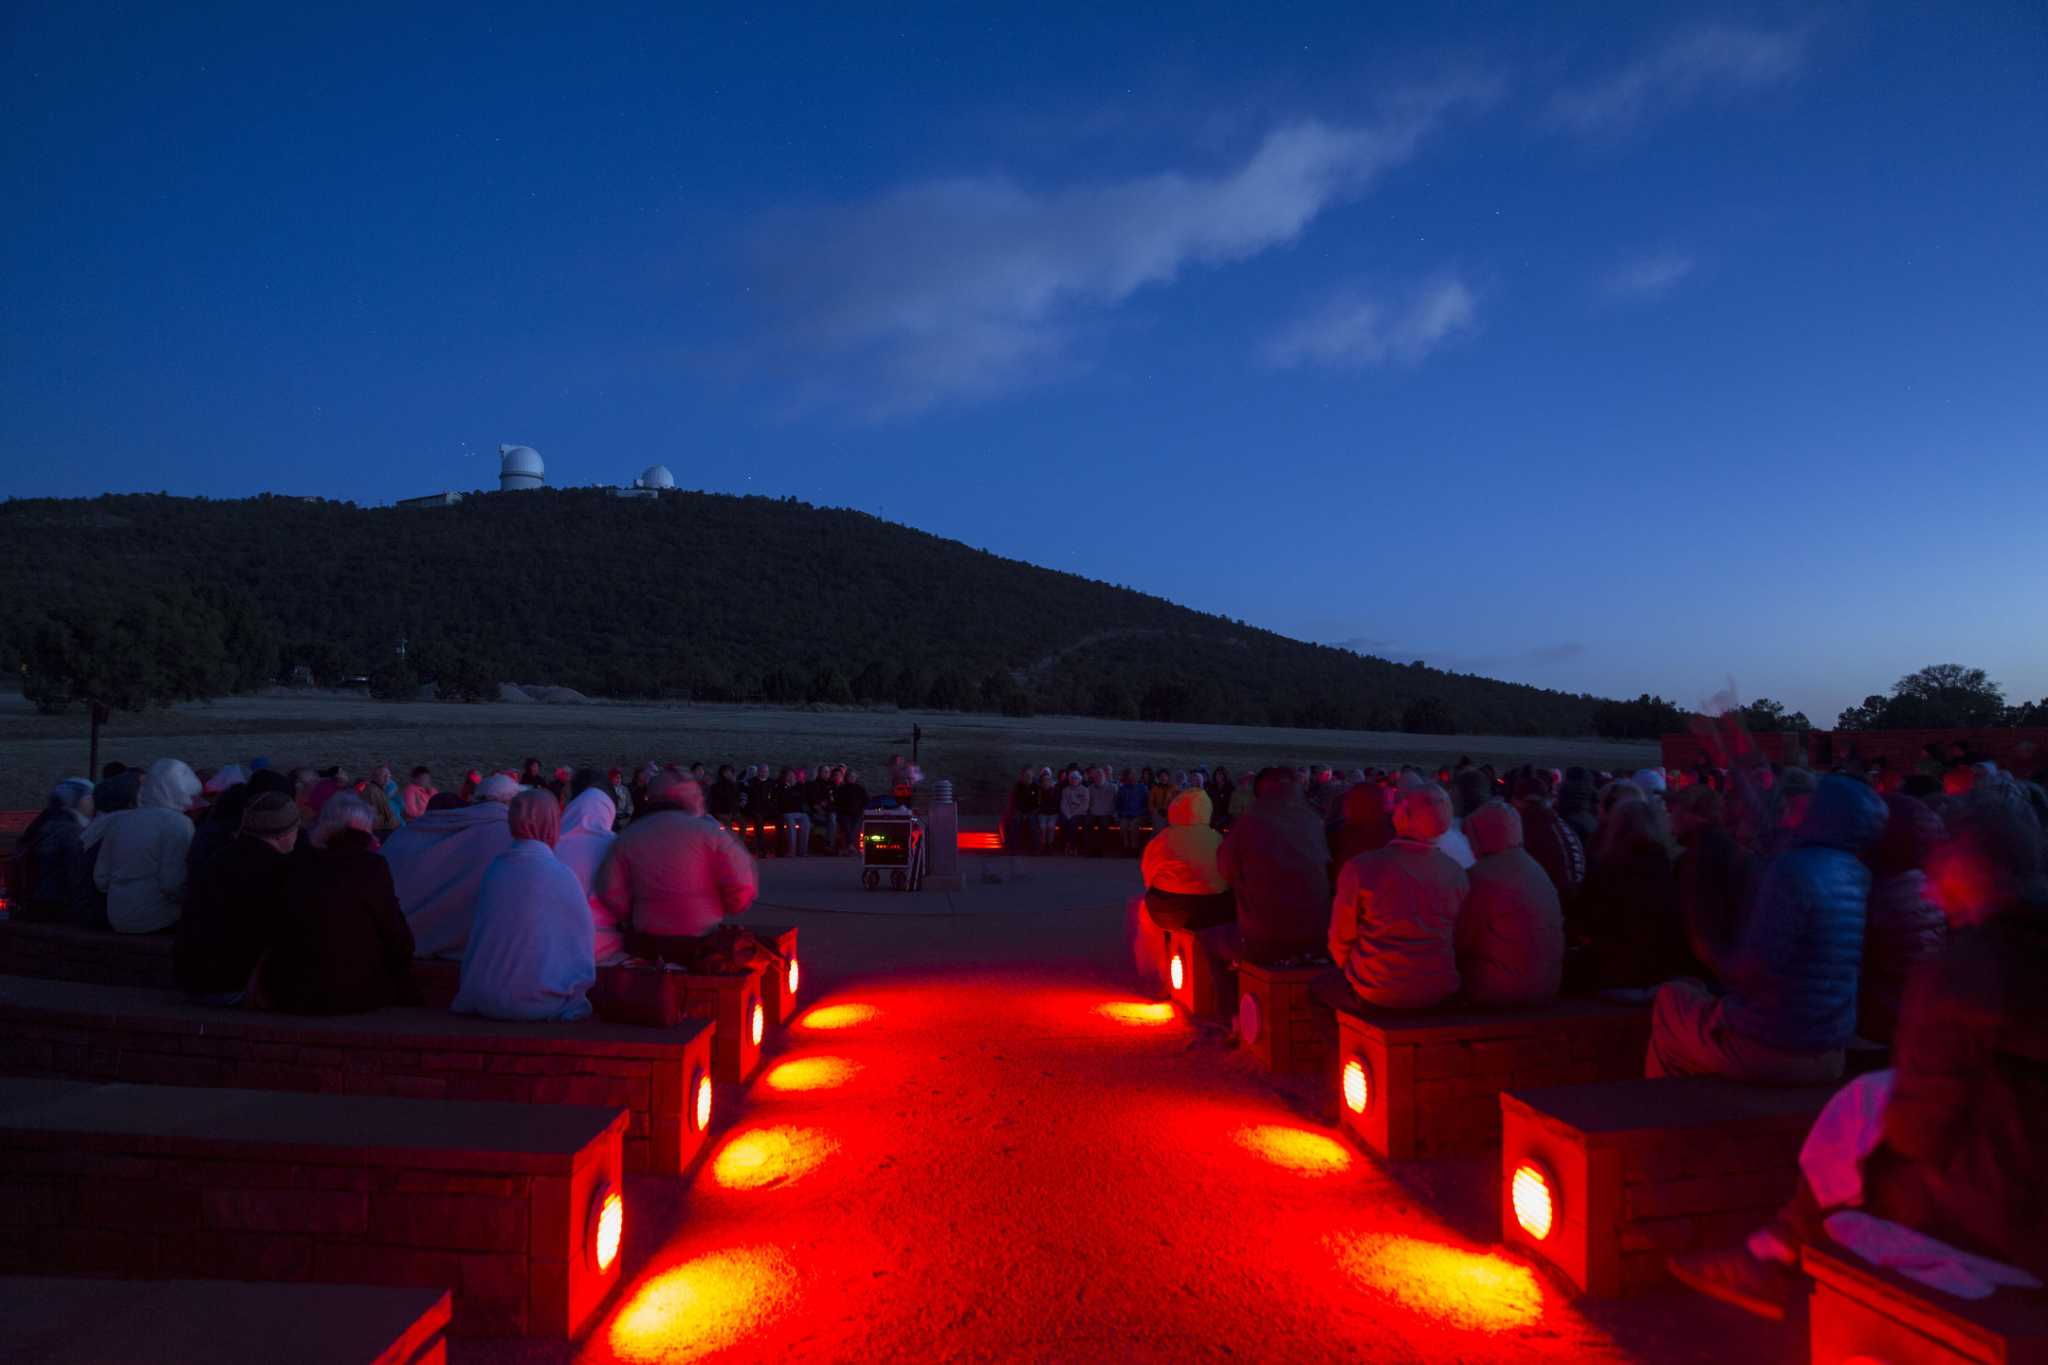 Mcdonald Observatory Works With Energy Companies To Stop